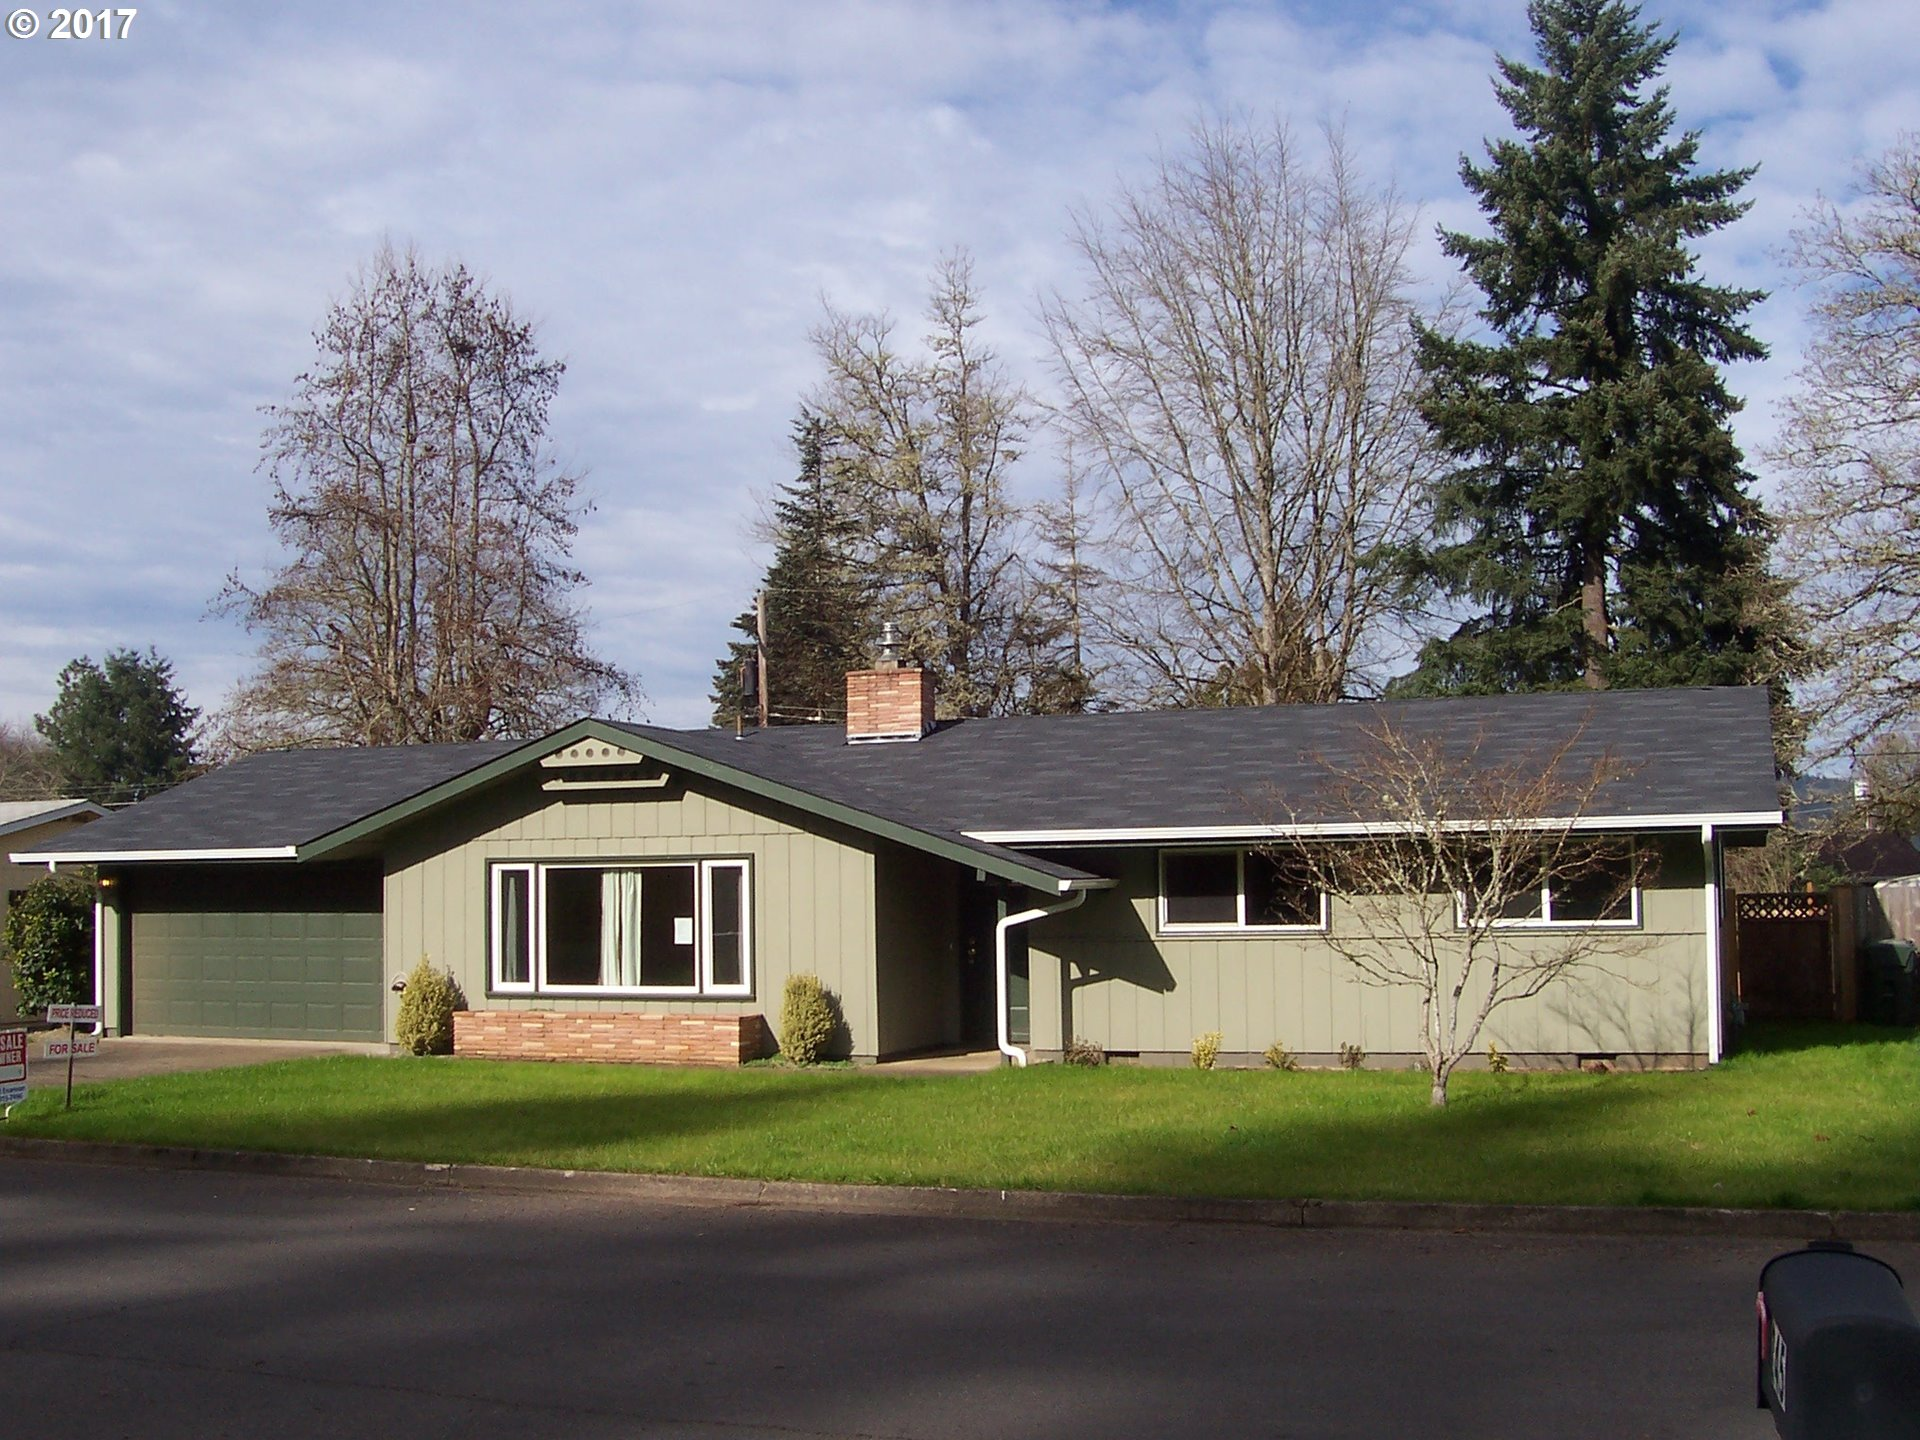 248 HAYES AVE, Cottage Grove, OR 97424